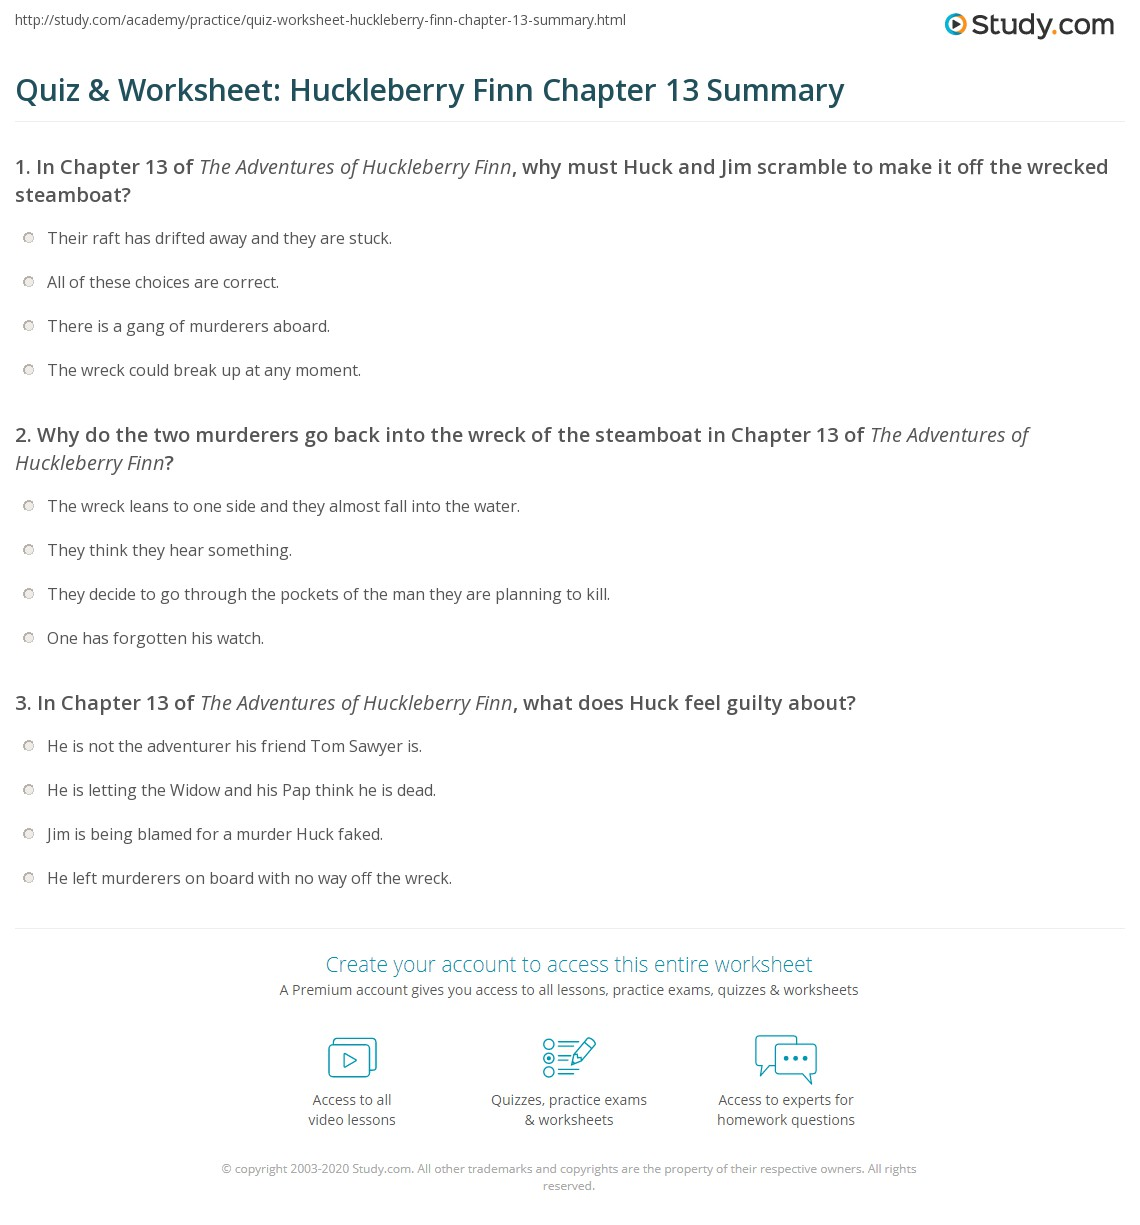 quiz worksheet huckleberry finn chapter 13 summary study com rh study com huckleberry finn study and discussion guide answers the adventure of huckleberry finn study guide answers